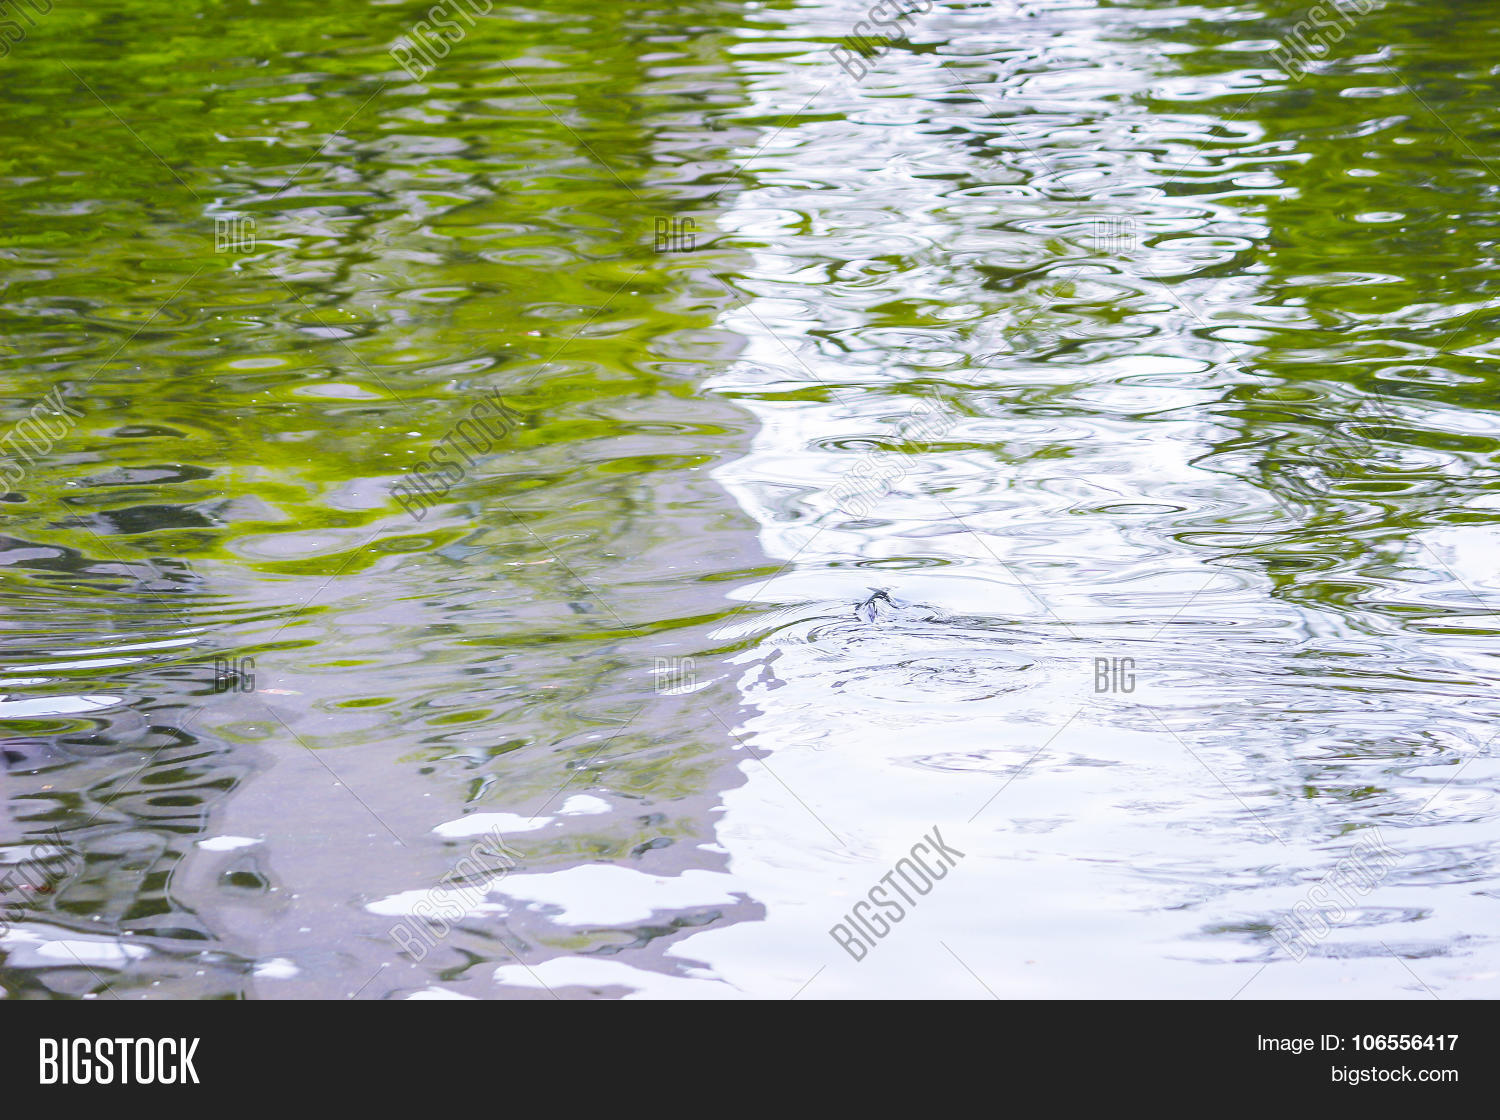 image of ripple surface of the water background